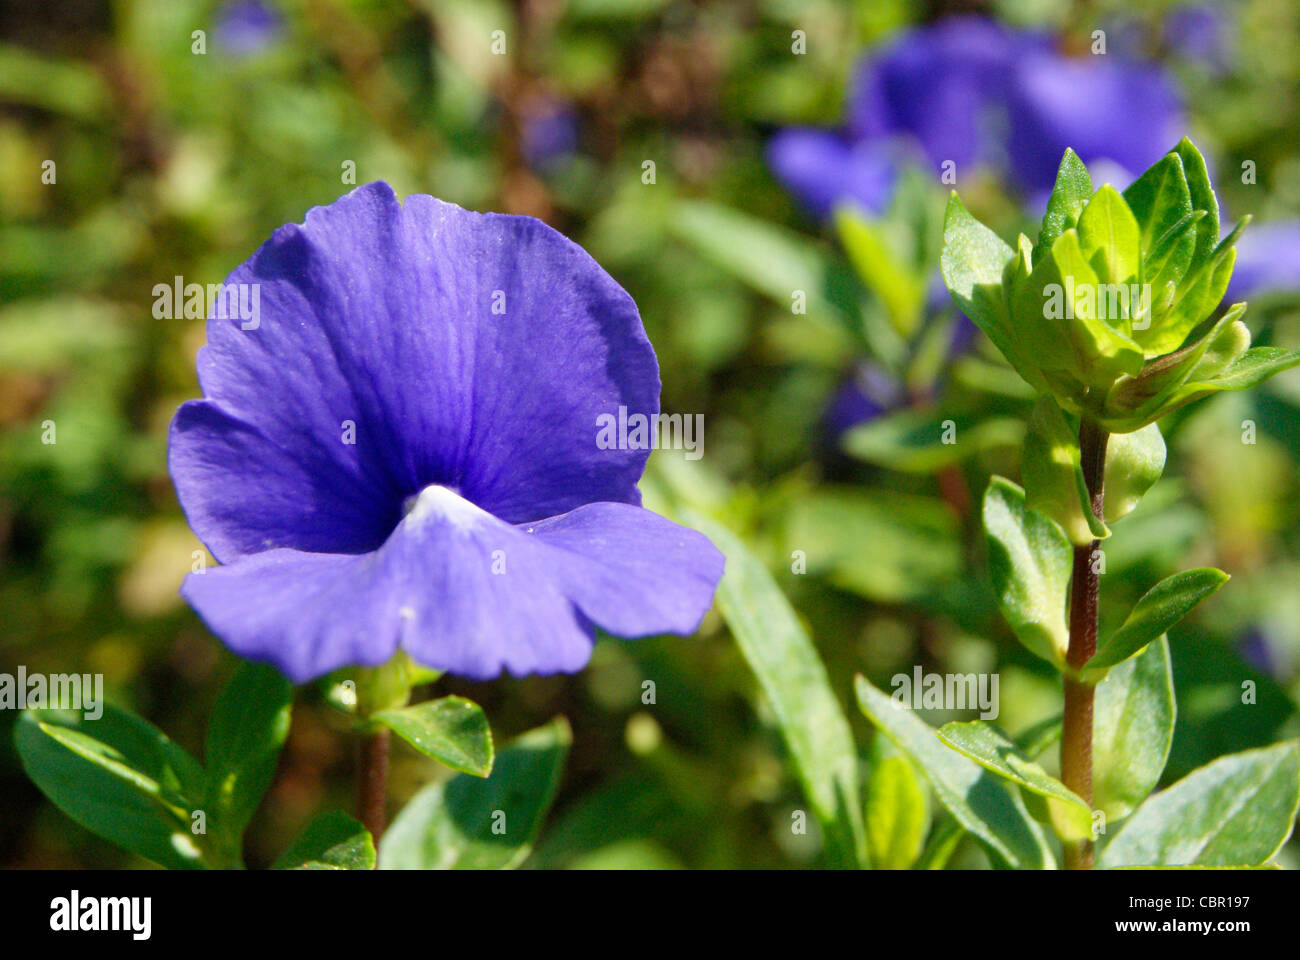 Unisexual flowers are found in